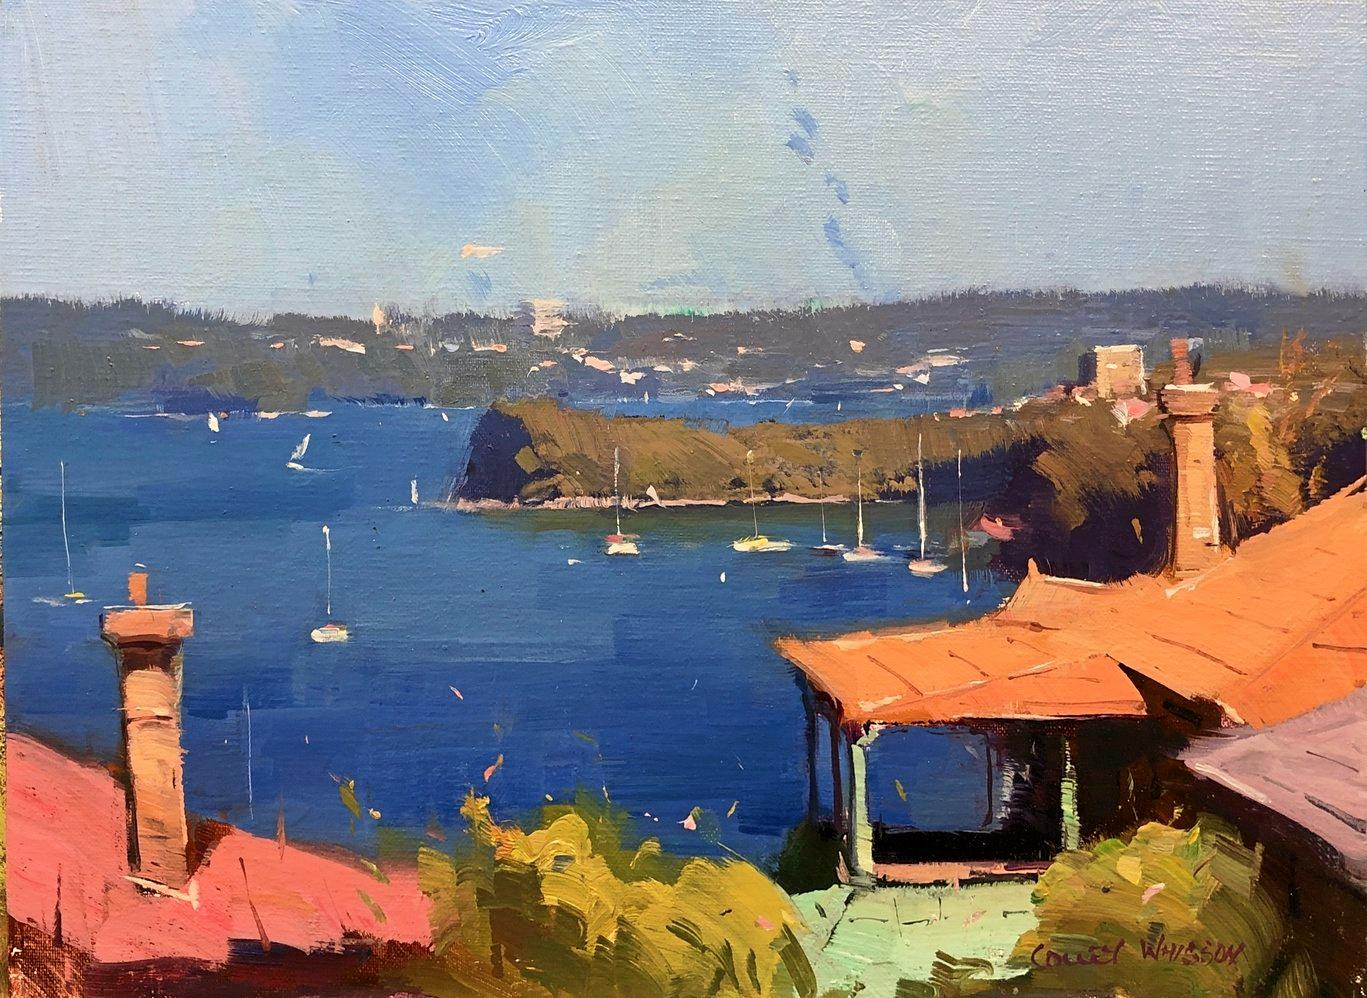 Mosman Bay Morning by Colley Whisson at Montville Art Gallery.